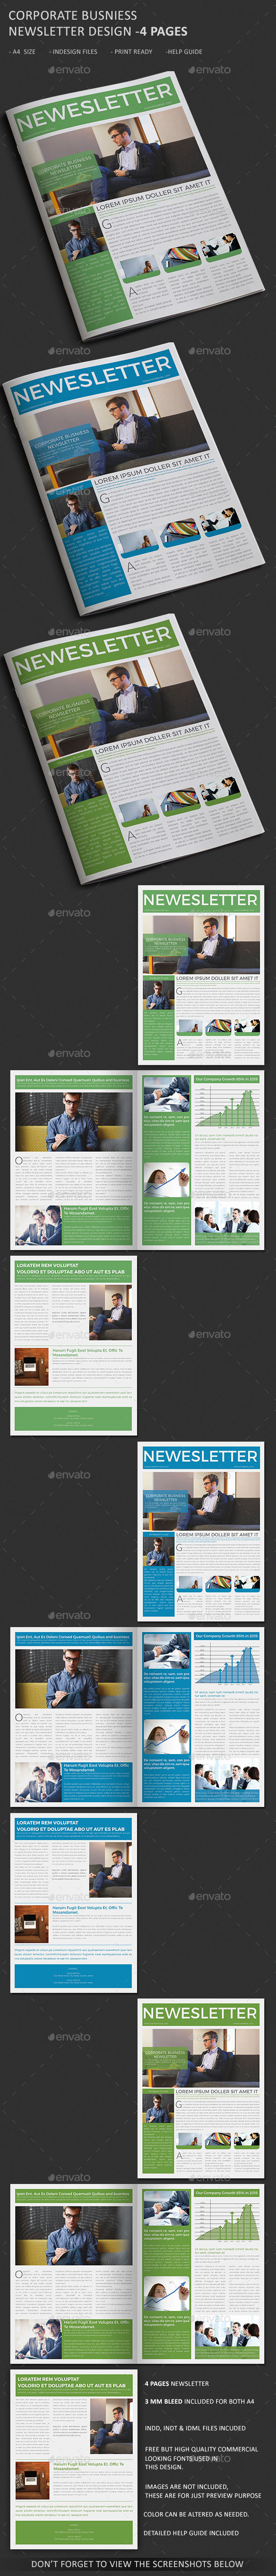 Corporate Business Newsletter 4 Page